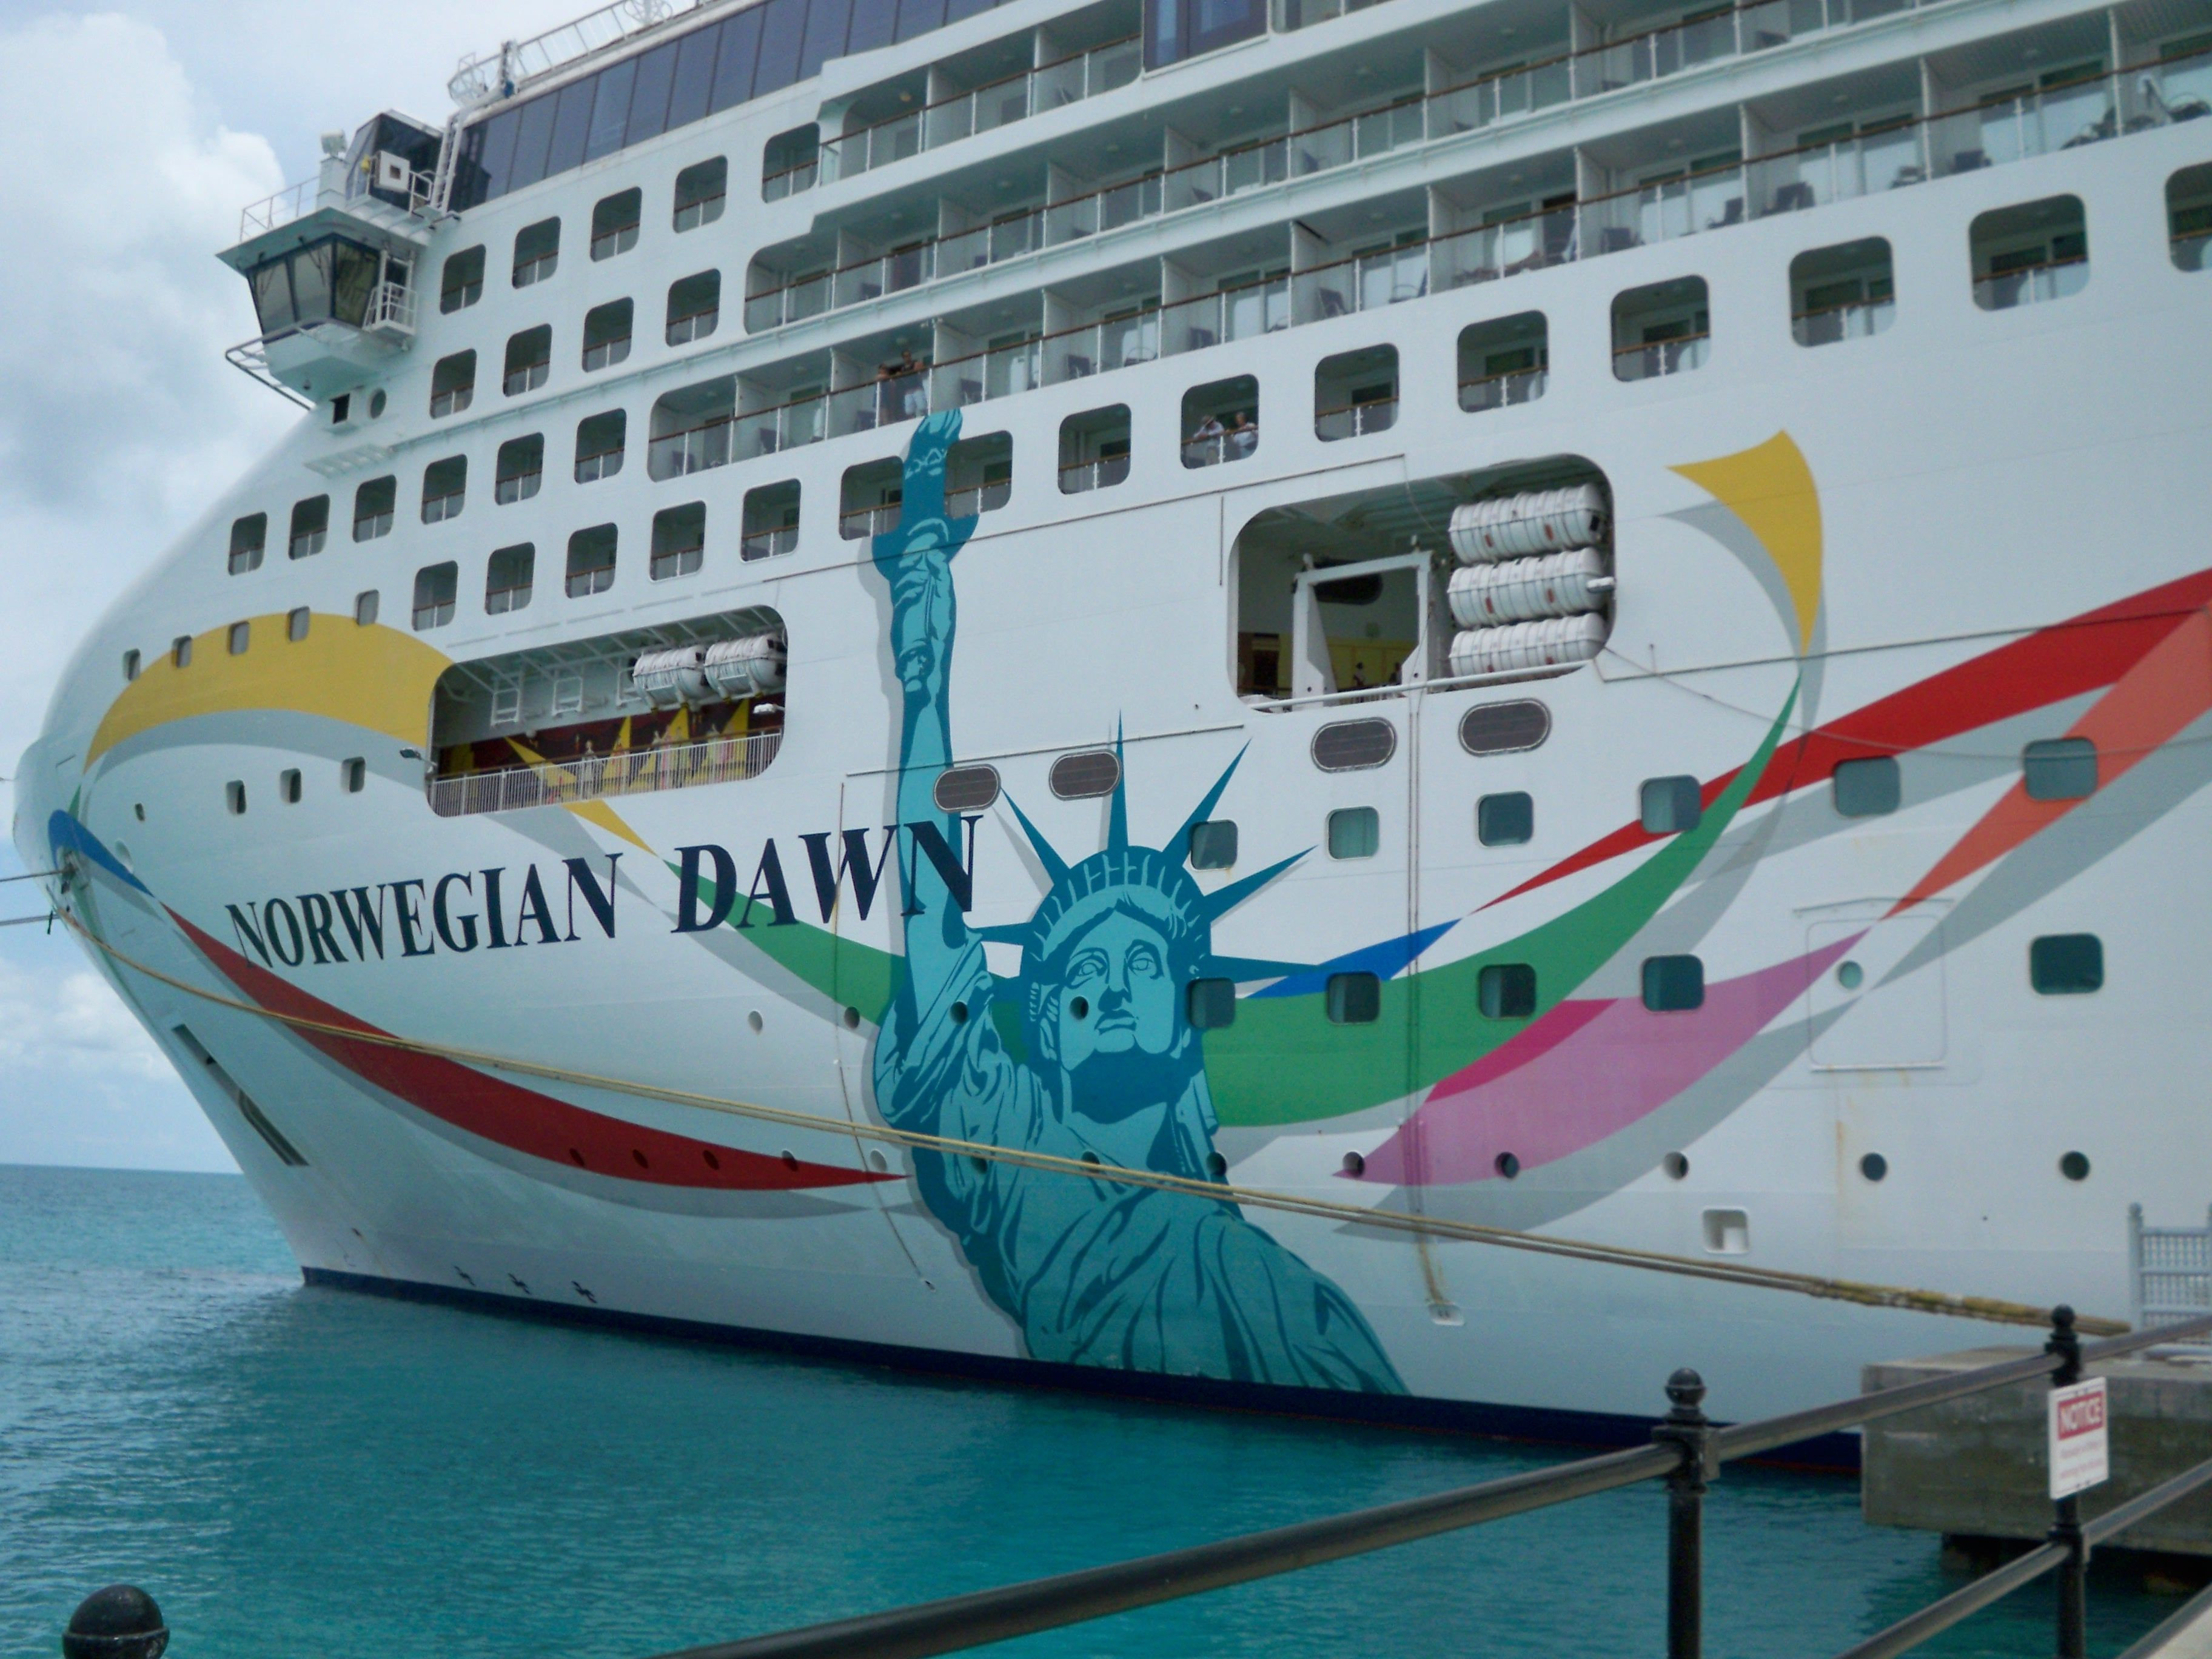 NCL Dawn - cant wait! Tampa here we come! (With images ...